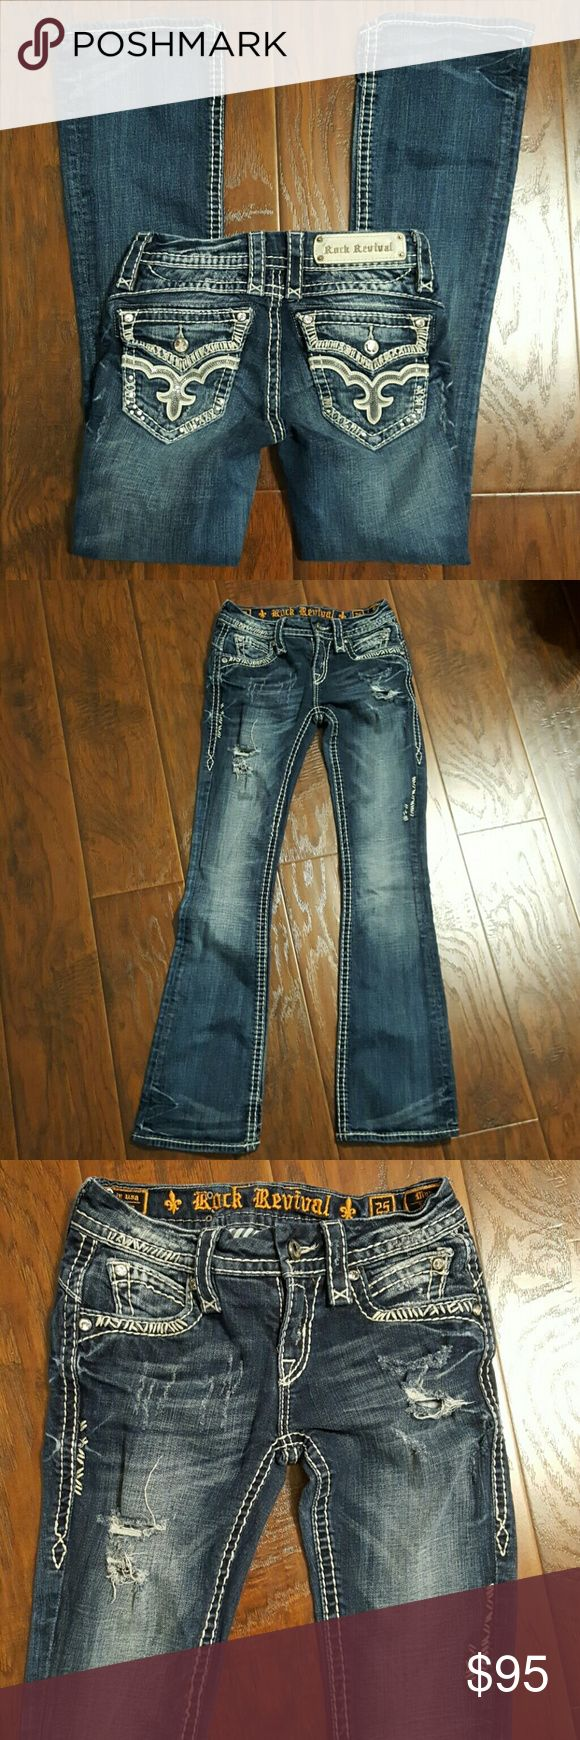 ROCK REVIVAL Jeans size 25 May Bootcut Distressed ROCK REVIVAL Jeans size 25 May Bootcut. Distressed Inseam is 31 inches. Rock Revival Jeans Boot Cut